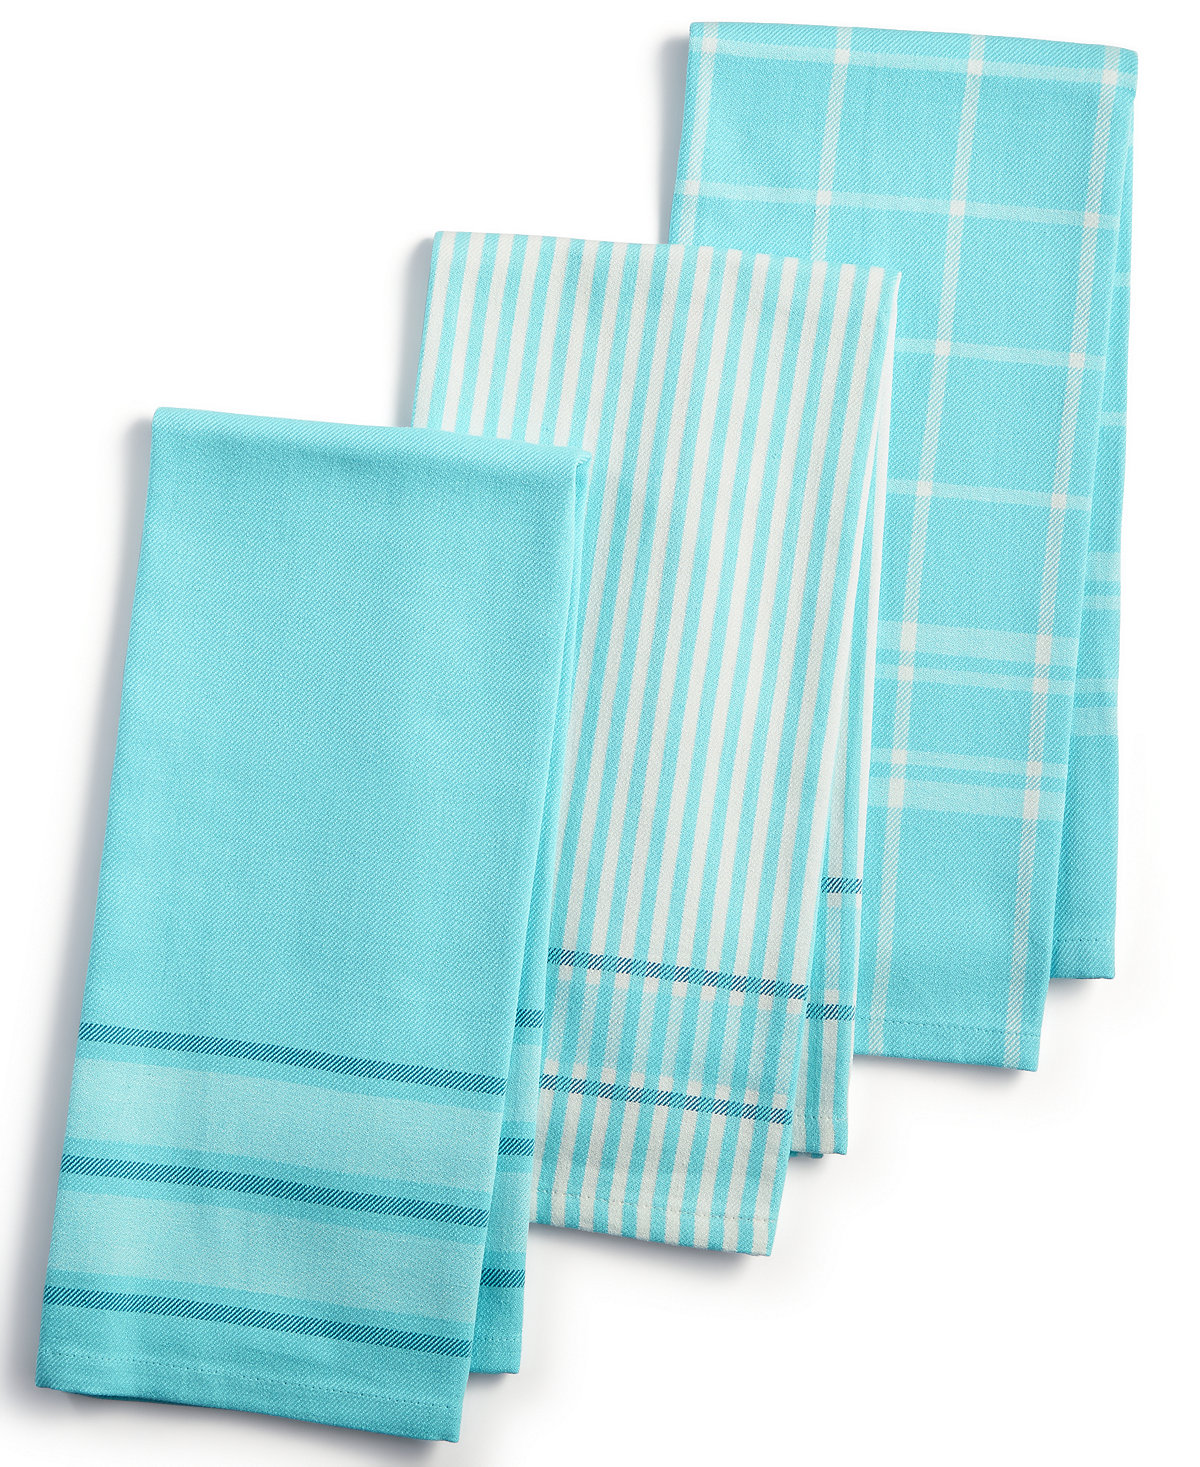 Martha Stewart Kitchen Towels: 3-Pc. Jacquard Striped Cotton Kitchen Towels